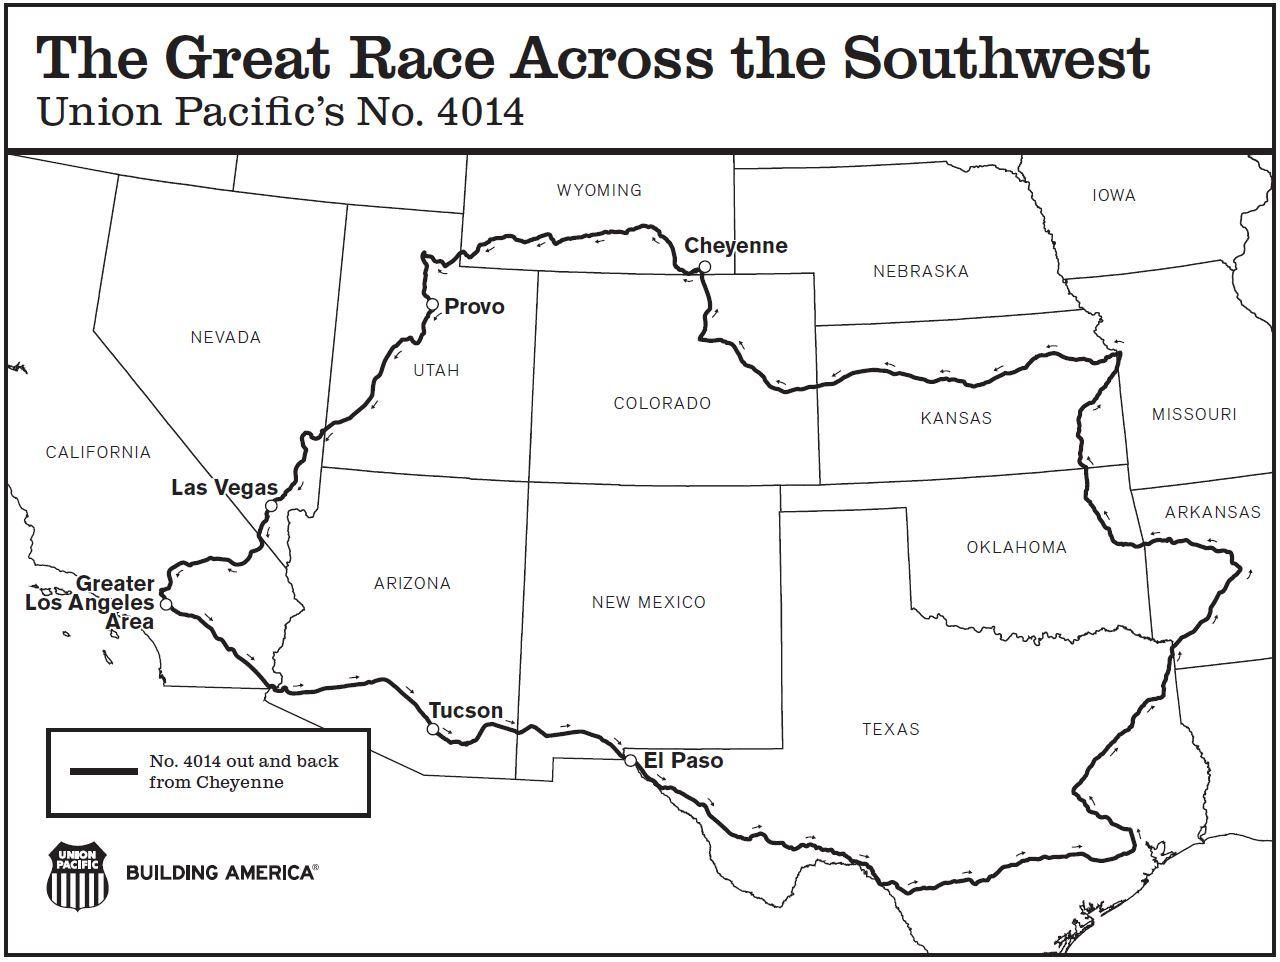 Map of the Great Race Across the Southwest for Big Boy. (Courtesy of Union Pacific)